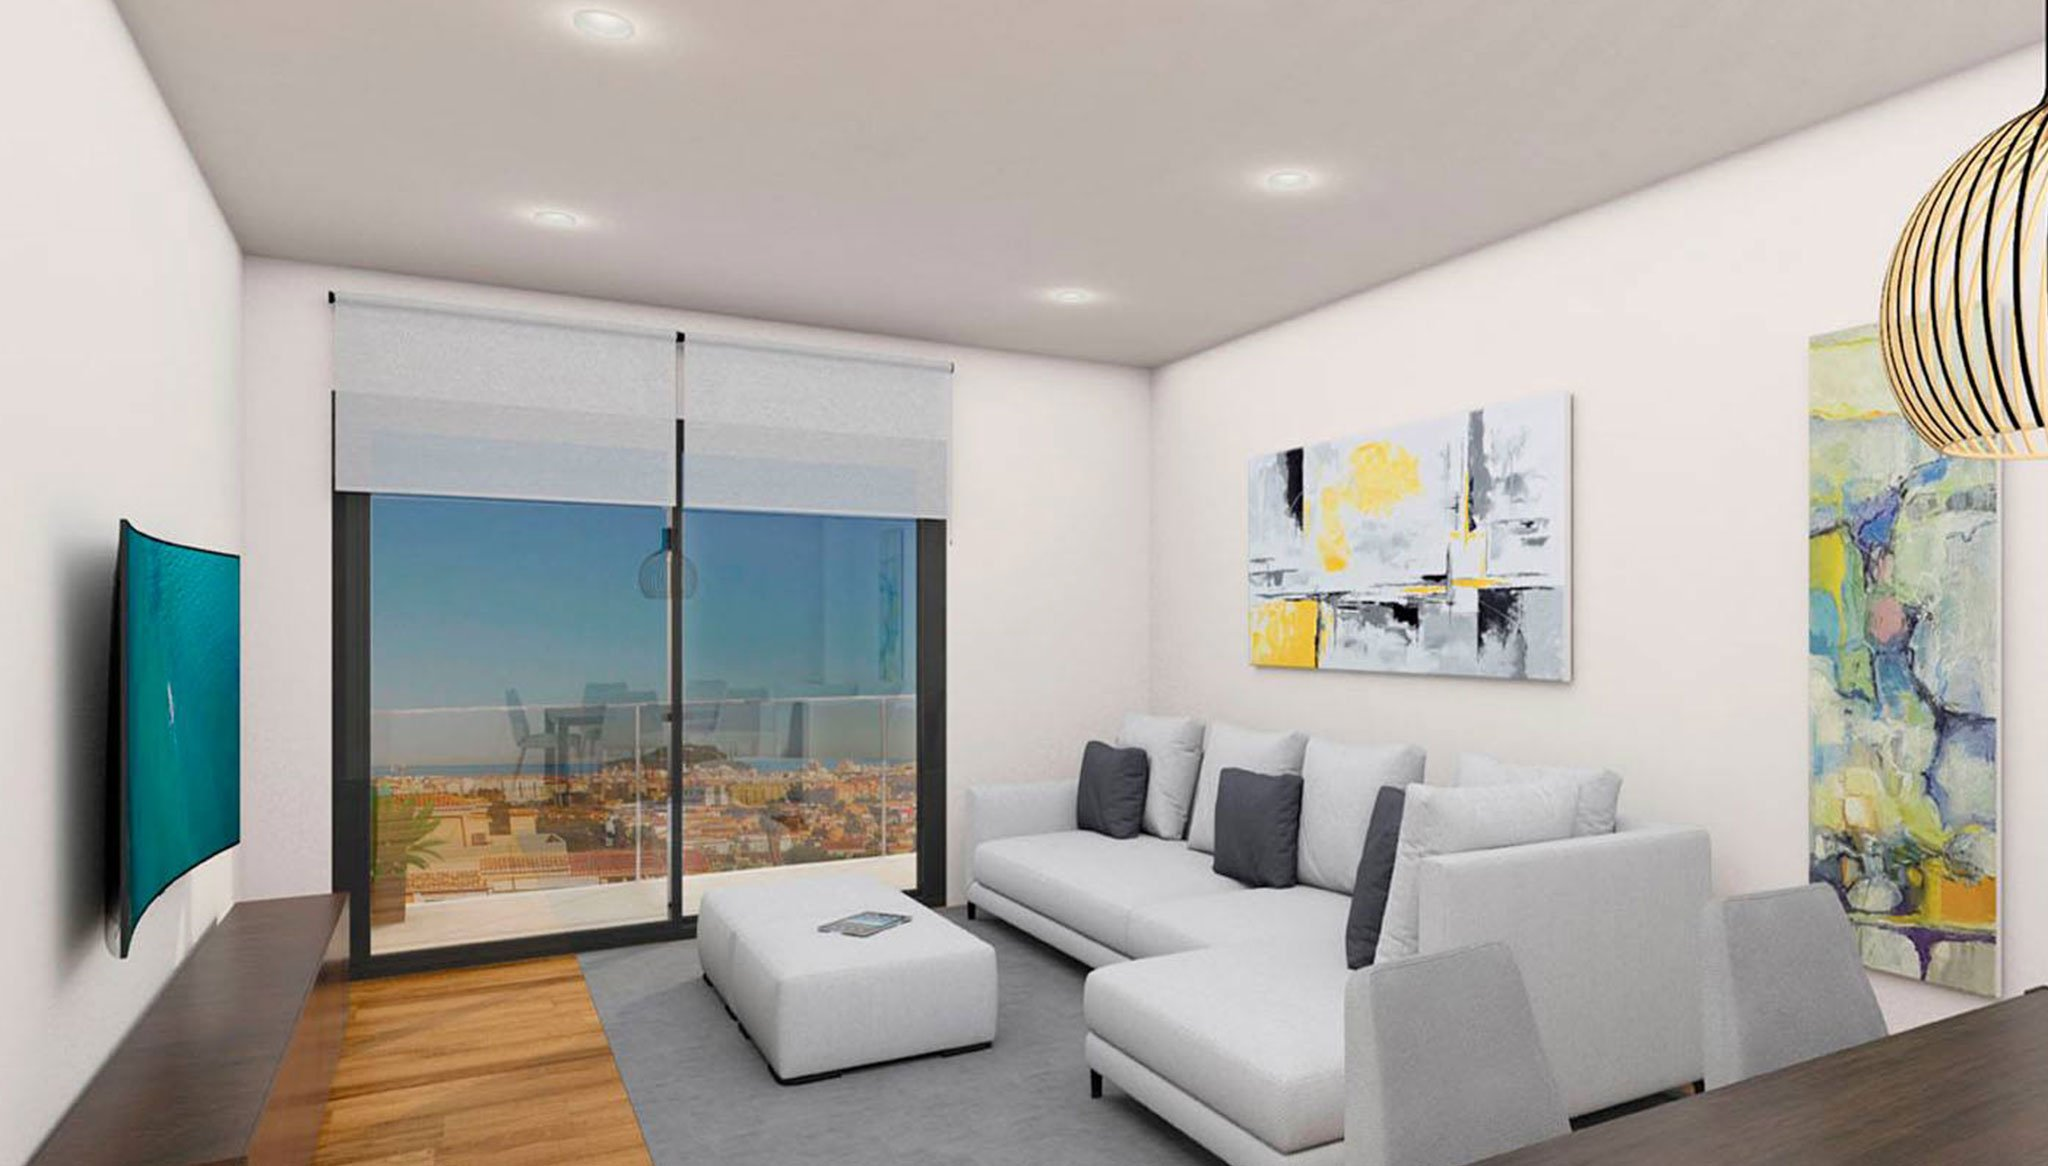 Interior of apartments for sale - Fine & Country Costa Blanca North